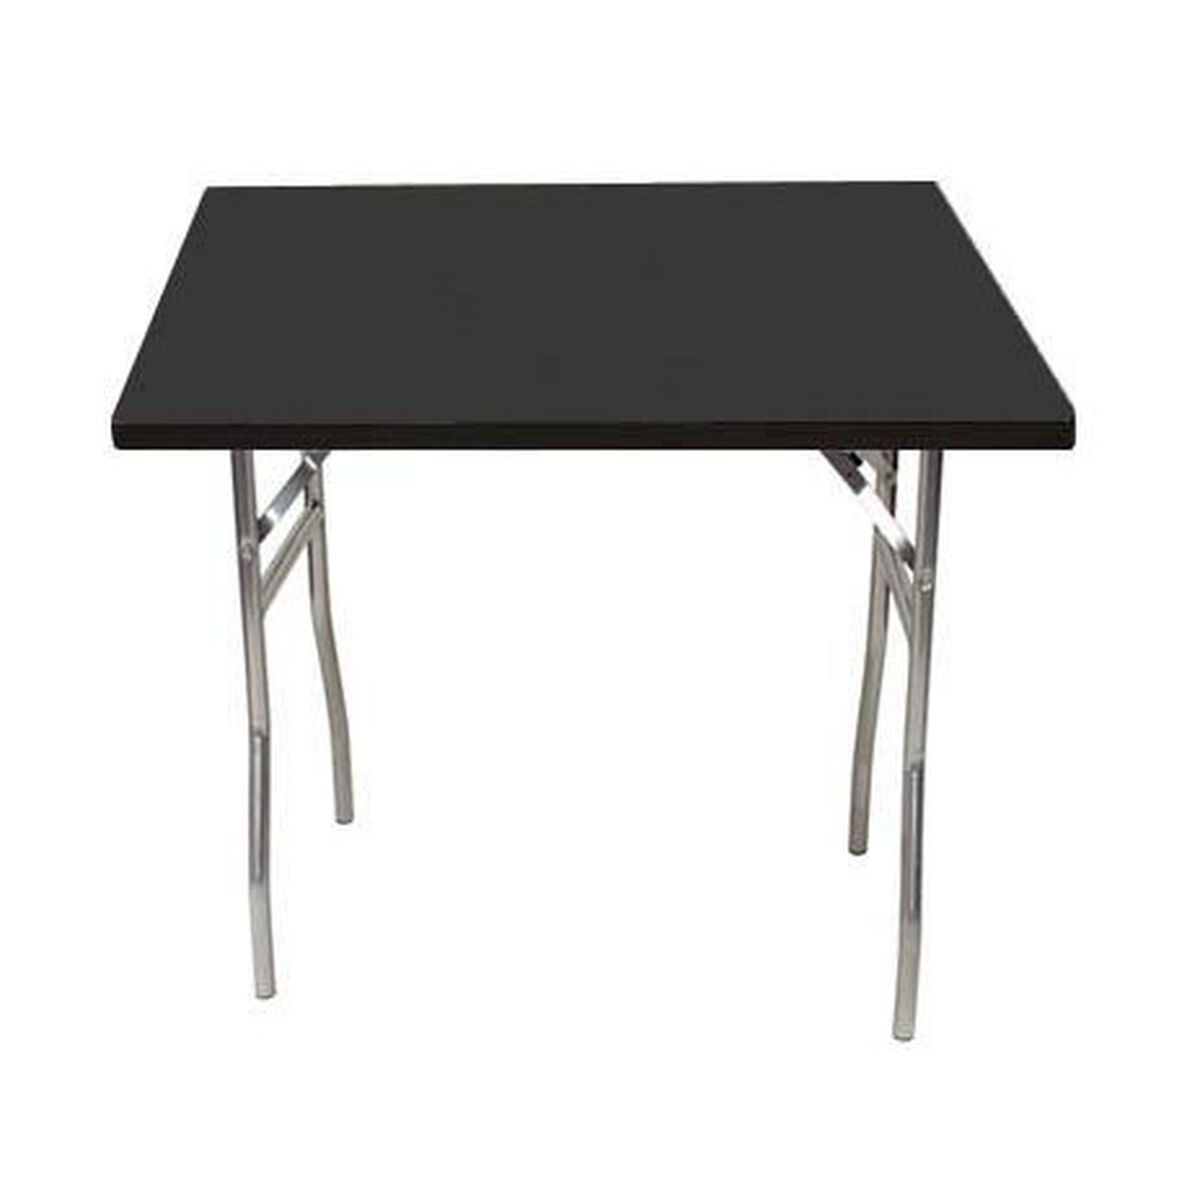 Square folding banquet table ml48sqfld bestchiavarichairs our standard series 48 square folding banquet table with laminate top is on sale watchthetrailerfo